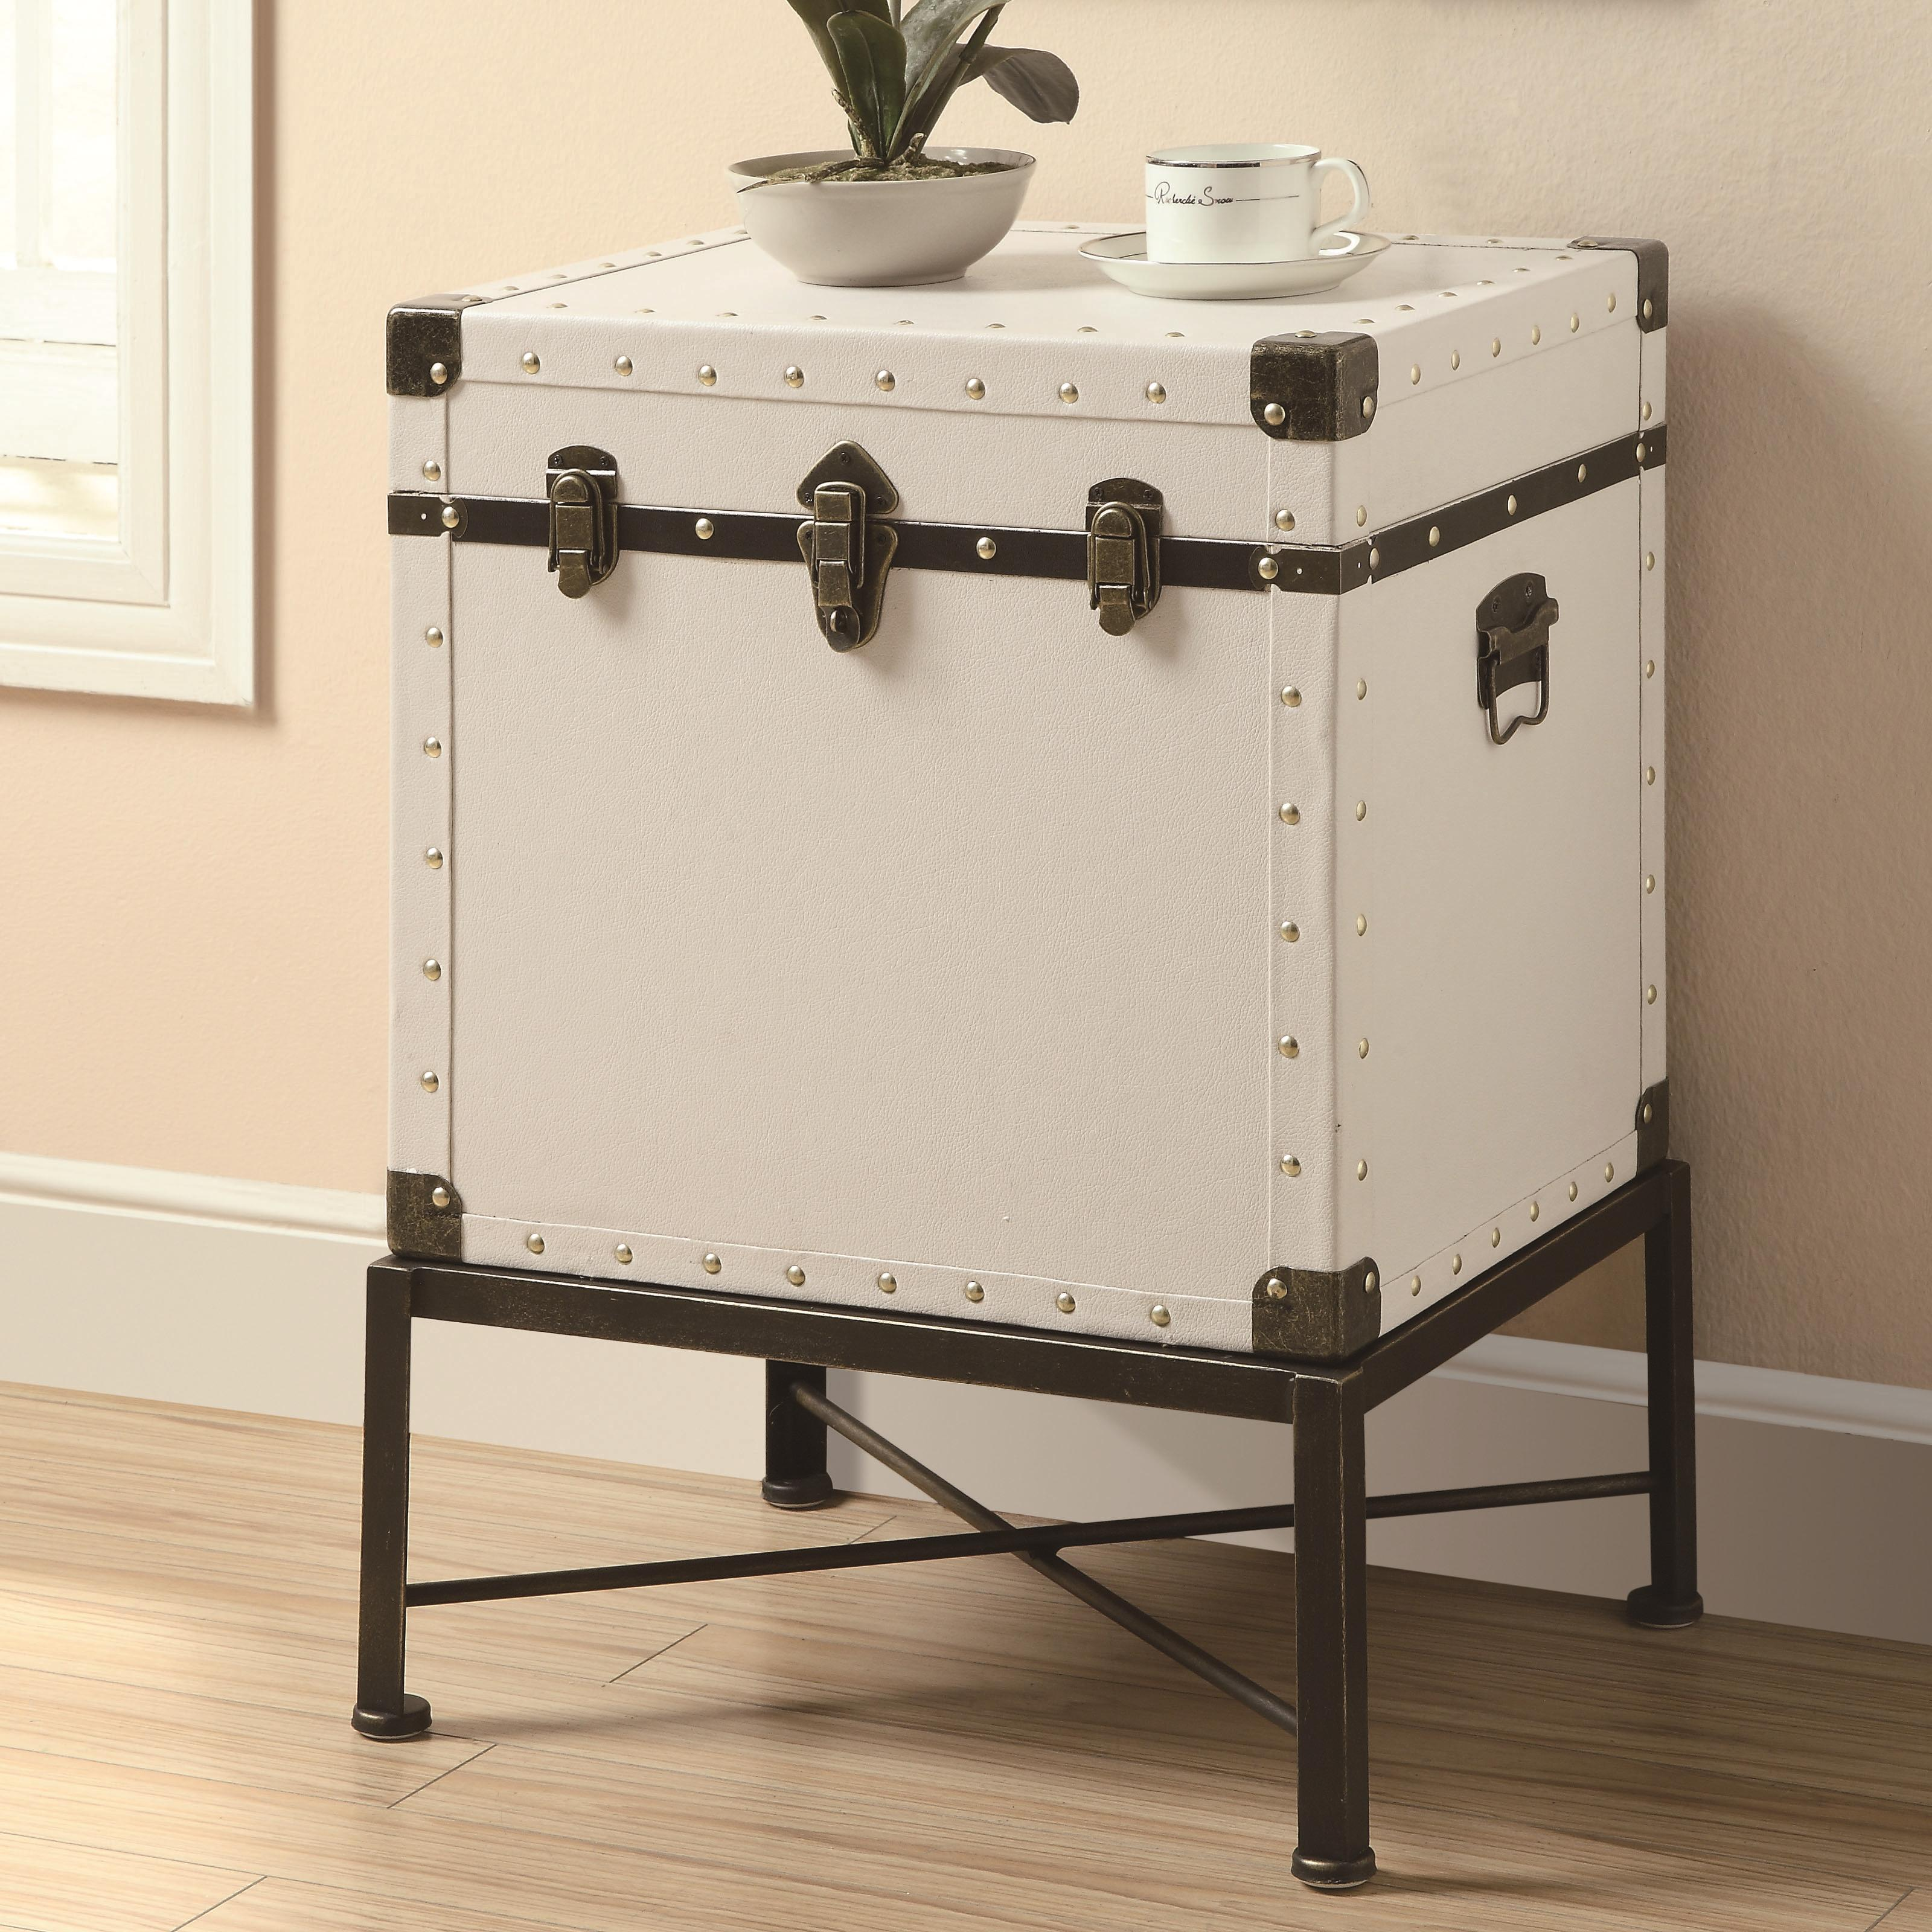 coaster accent cabinets trunk style side table furniture products color small tables for bedroom cabinet wall industrial cart coffee dale tiffany tulip lamp sofa with charging